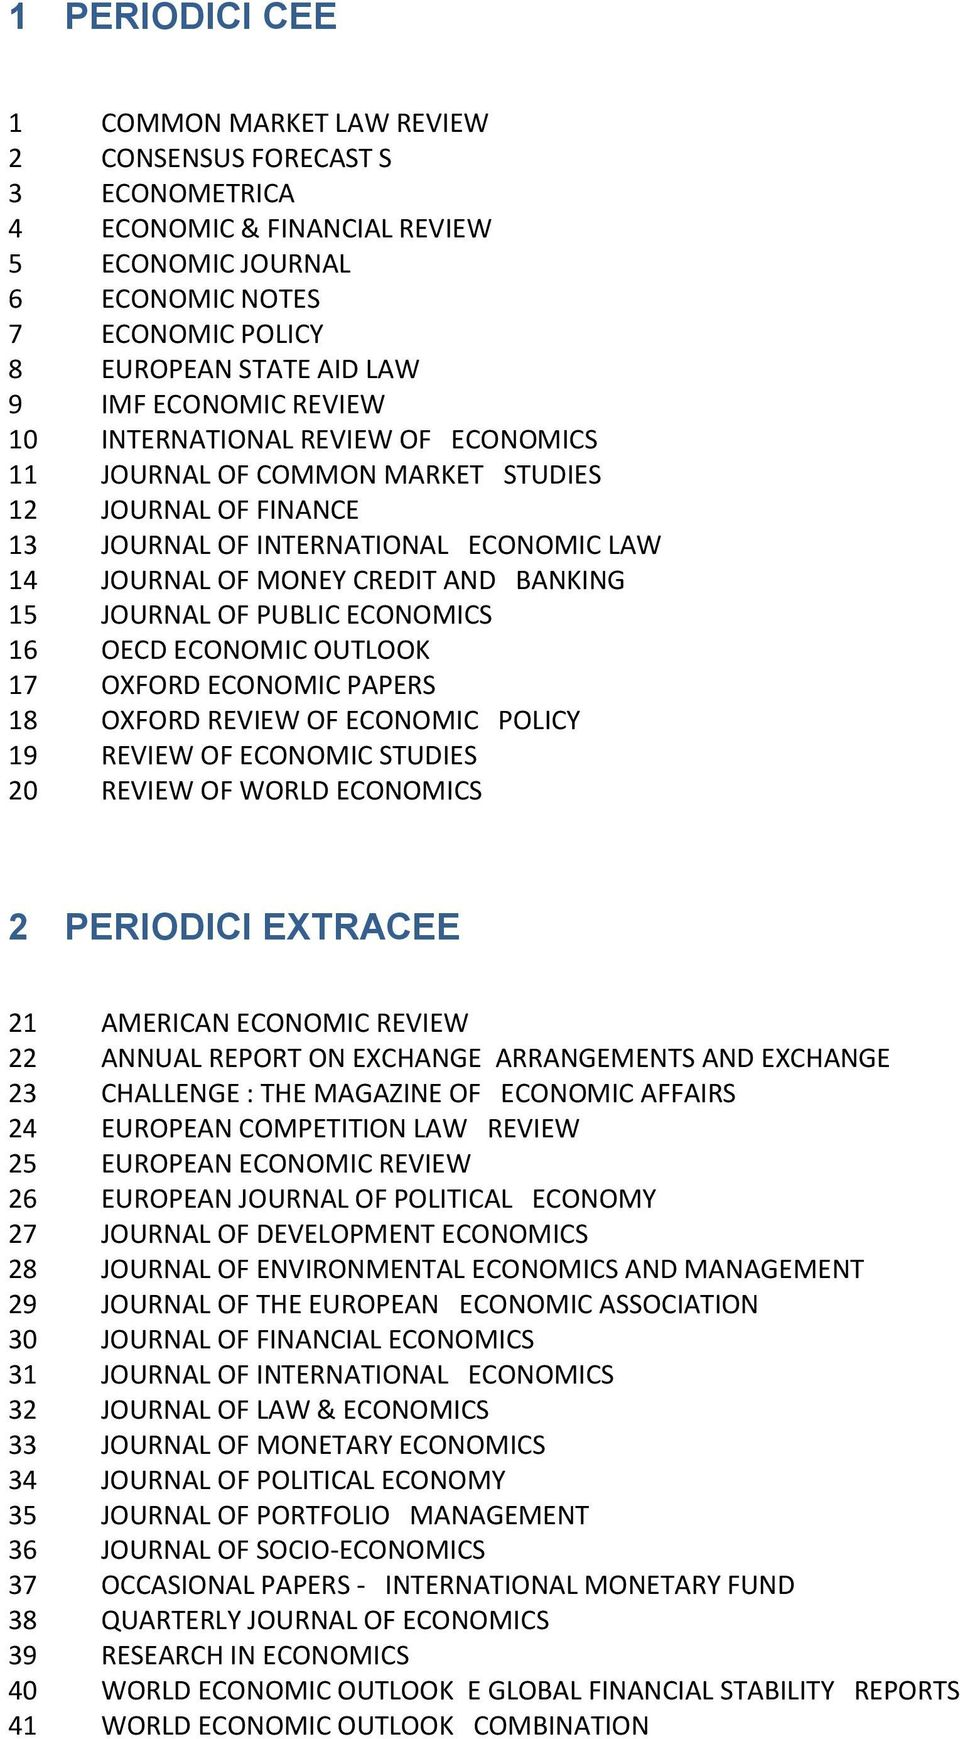 JOURNAL OF PUBLIC ECONOMICS 16 OECD ECONOMIC OUTLOOK 17 OXFORD ECONOMIC PAPERS 18 OXFORD REVIEW OF ECONOMIC POLICY 19 REVIEW OF ECONOMIC STUDIES 20 REVIEW OF WORLD ECONOMICS 2 PERIODICI EXTRACEE 21